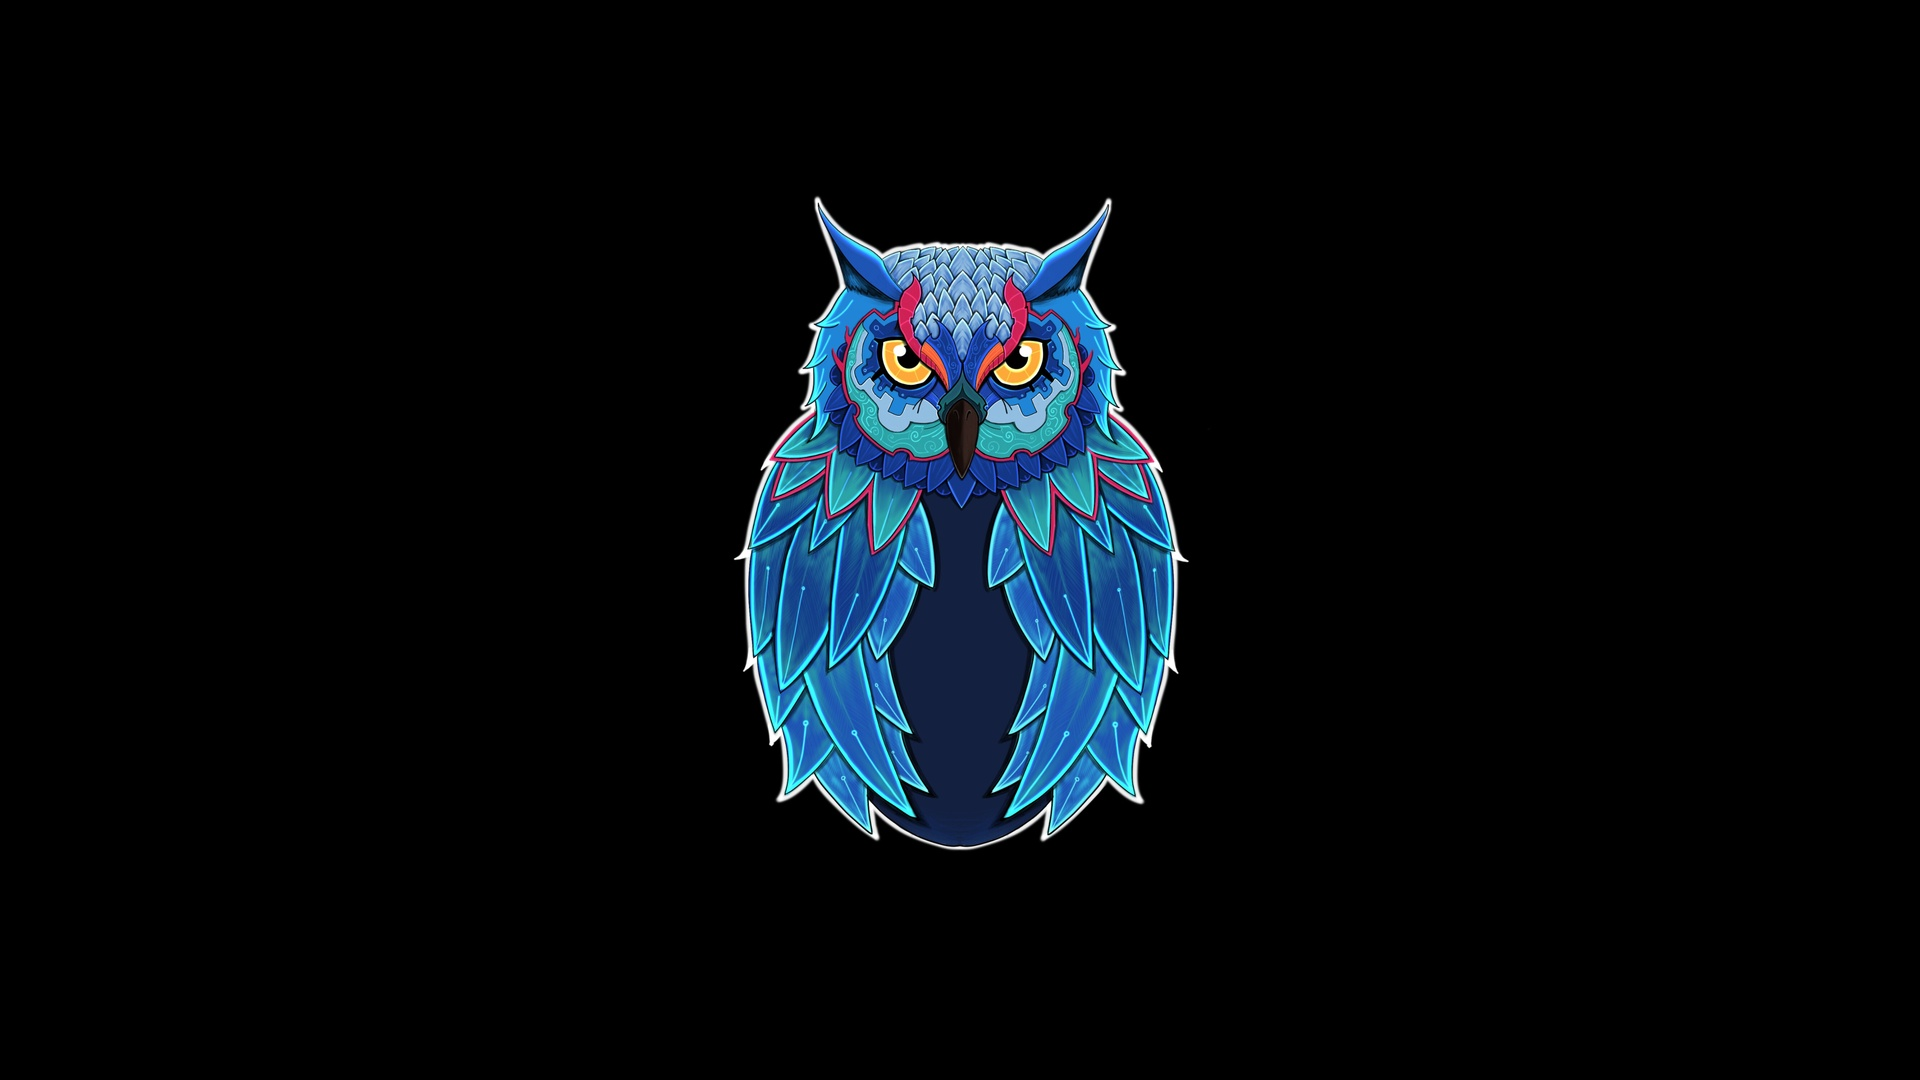 1920x1080 Owl Dark 5k Laptop Full Hd 1080p Hd 4k Wallpapers Images Backgrounds Photos And Pictures